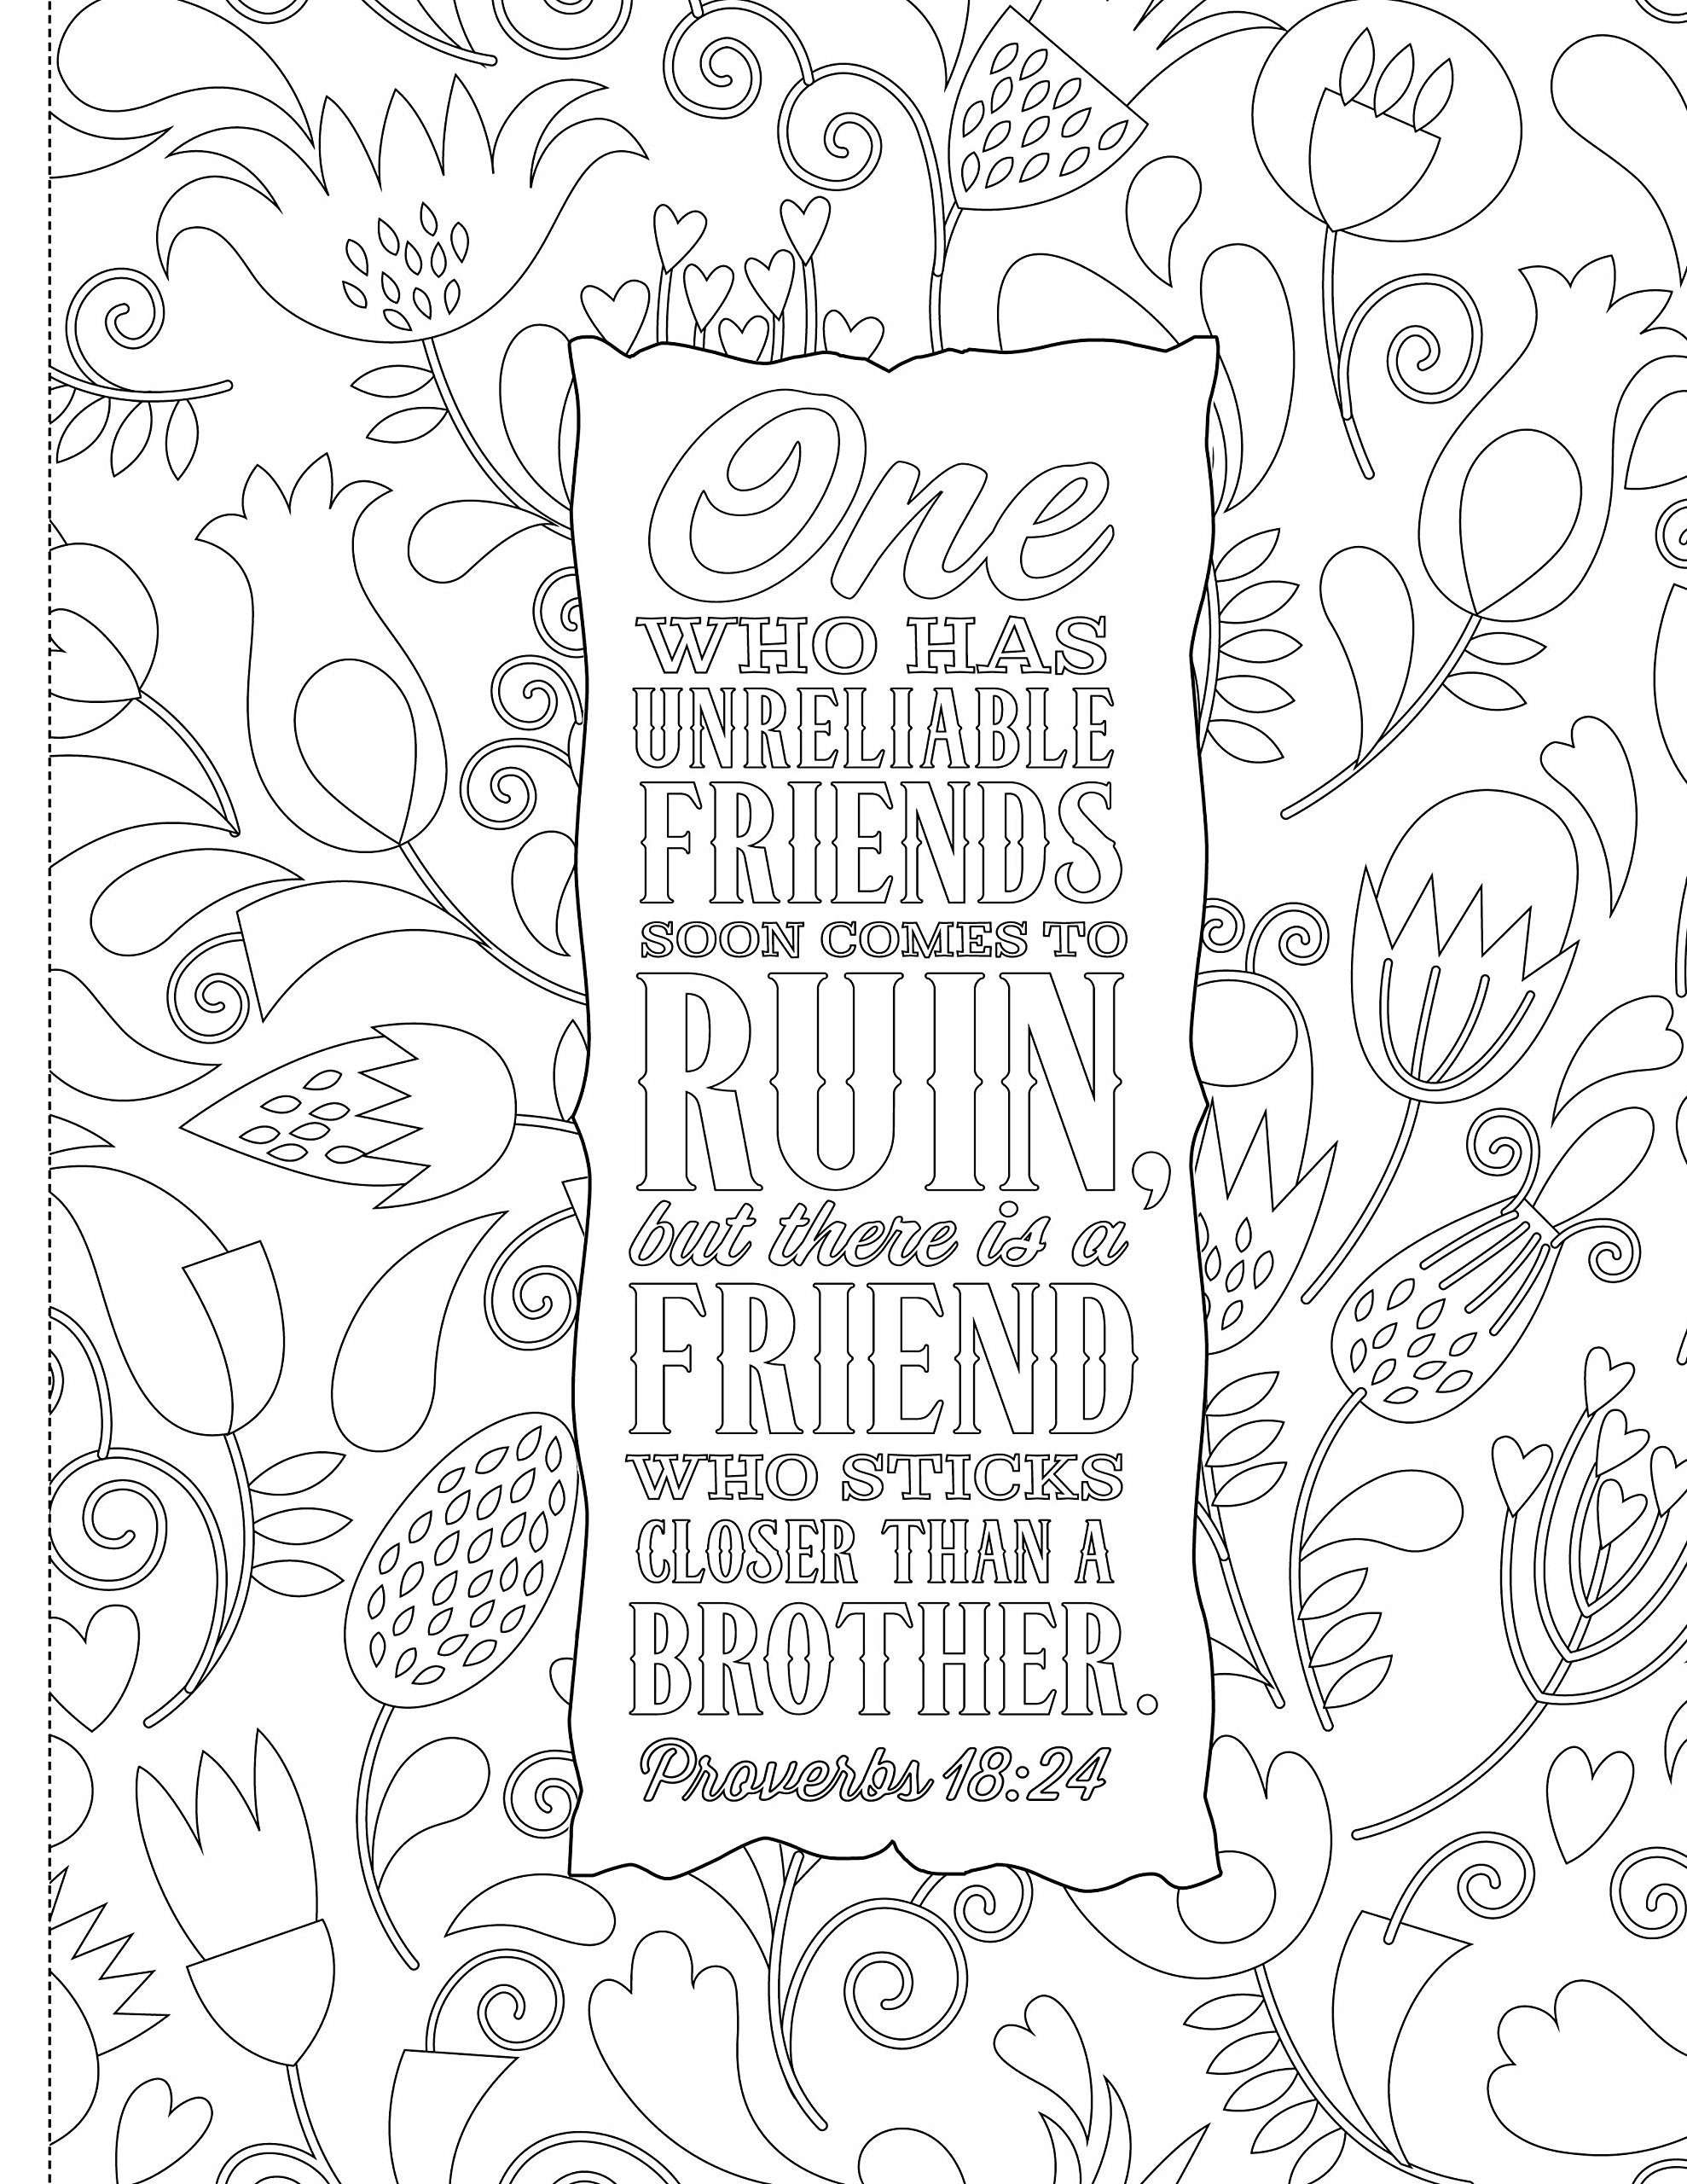 christian coloring pages with scripture Download-Preschool Bible Coloring Pages New Coloring Page for Adult Od Kids Simple Floral Heart with Text 20-a